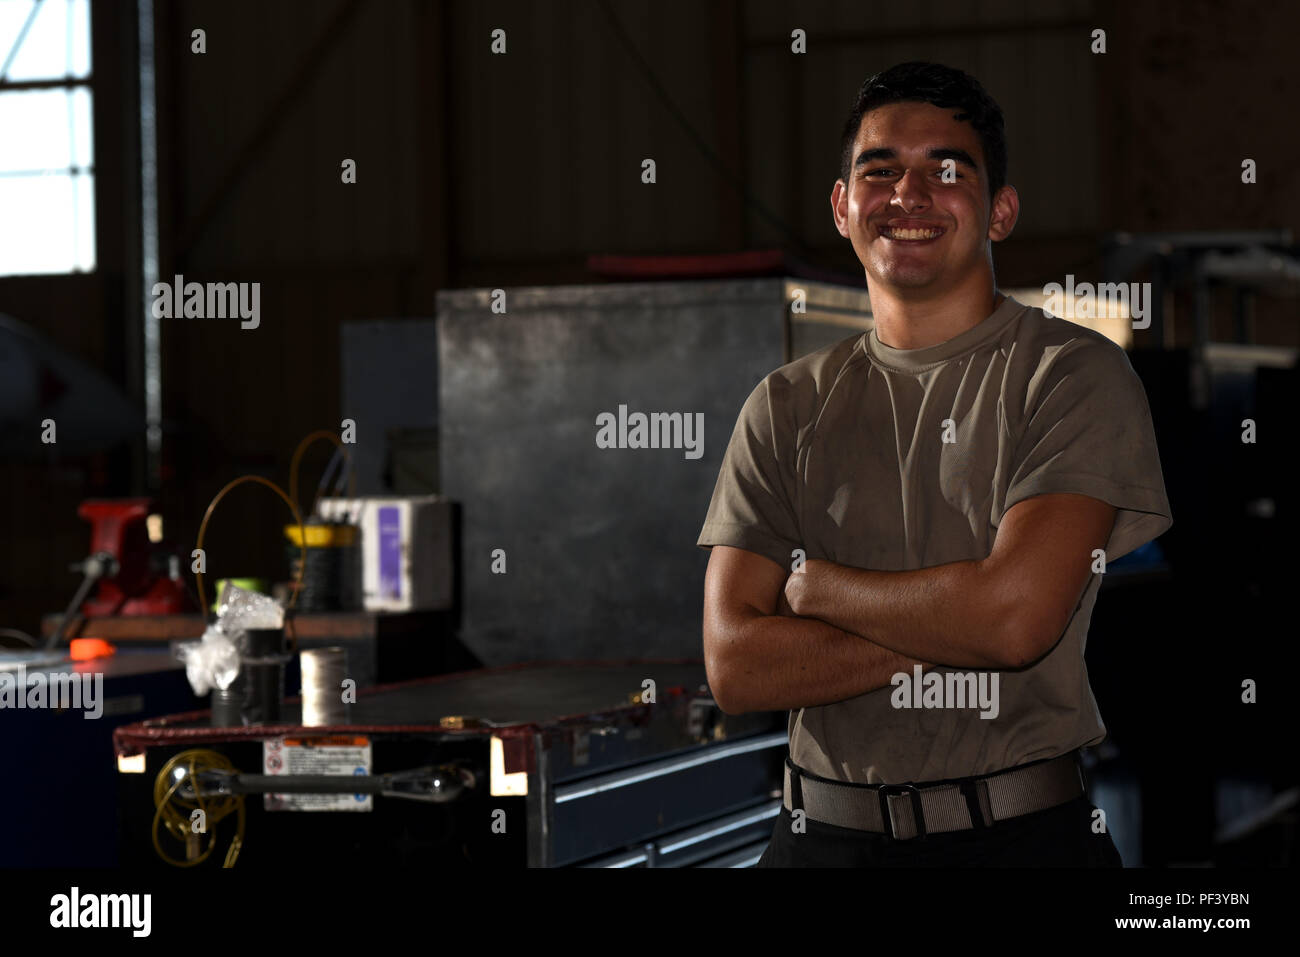 U.S. Air Force Airman 1st Class Jimmy Knutson, 20th Equipment Maintenance Squadron tactical aircraft maintainer, stands next to toolboxes in his work center at Shaw Air Force Base, S.C., Aug. 10, 2018. Knutson and other Airmen from across the base received the opportunity to share their ideas of what it means to serve in the Air Force. (U.S. Air Force photo by Senior Airman Kathryn R.C. Reaves) Stock Photo